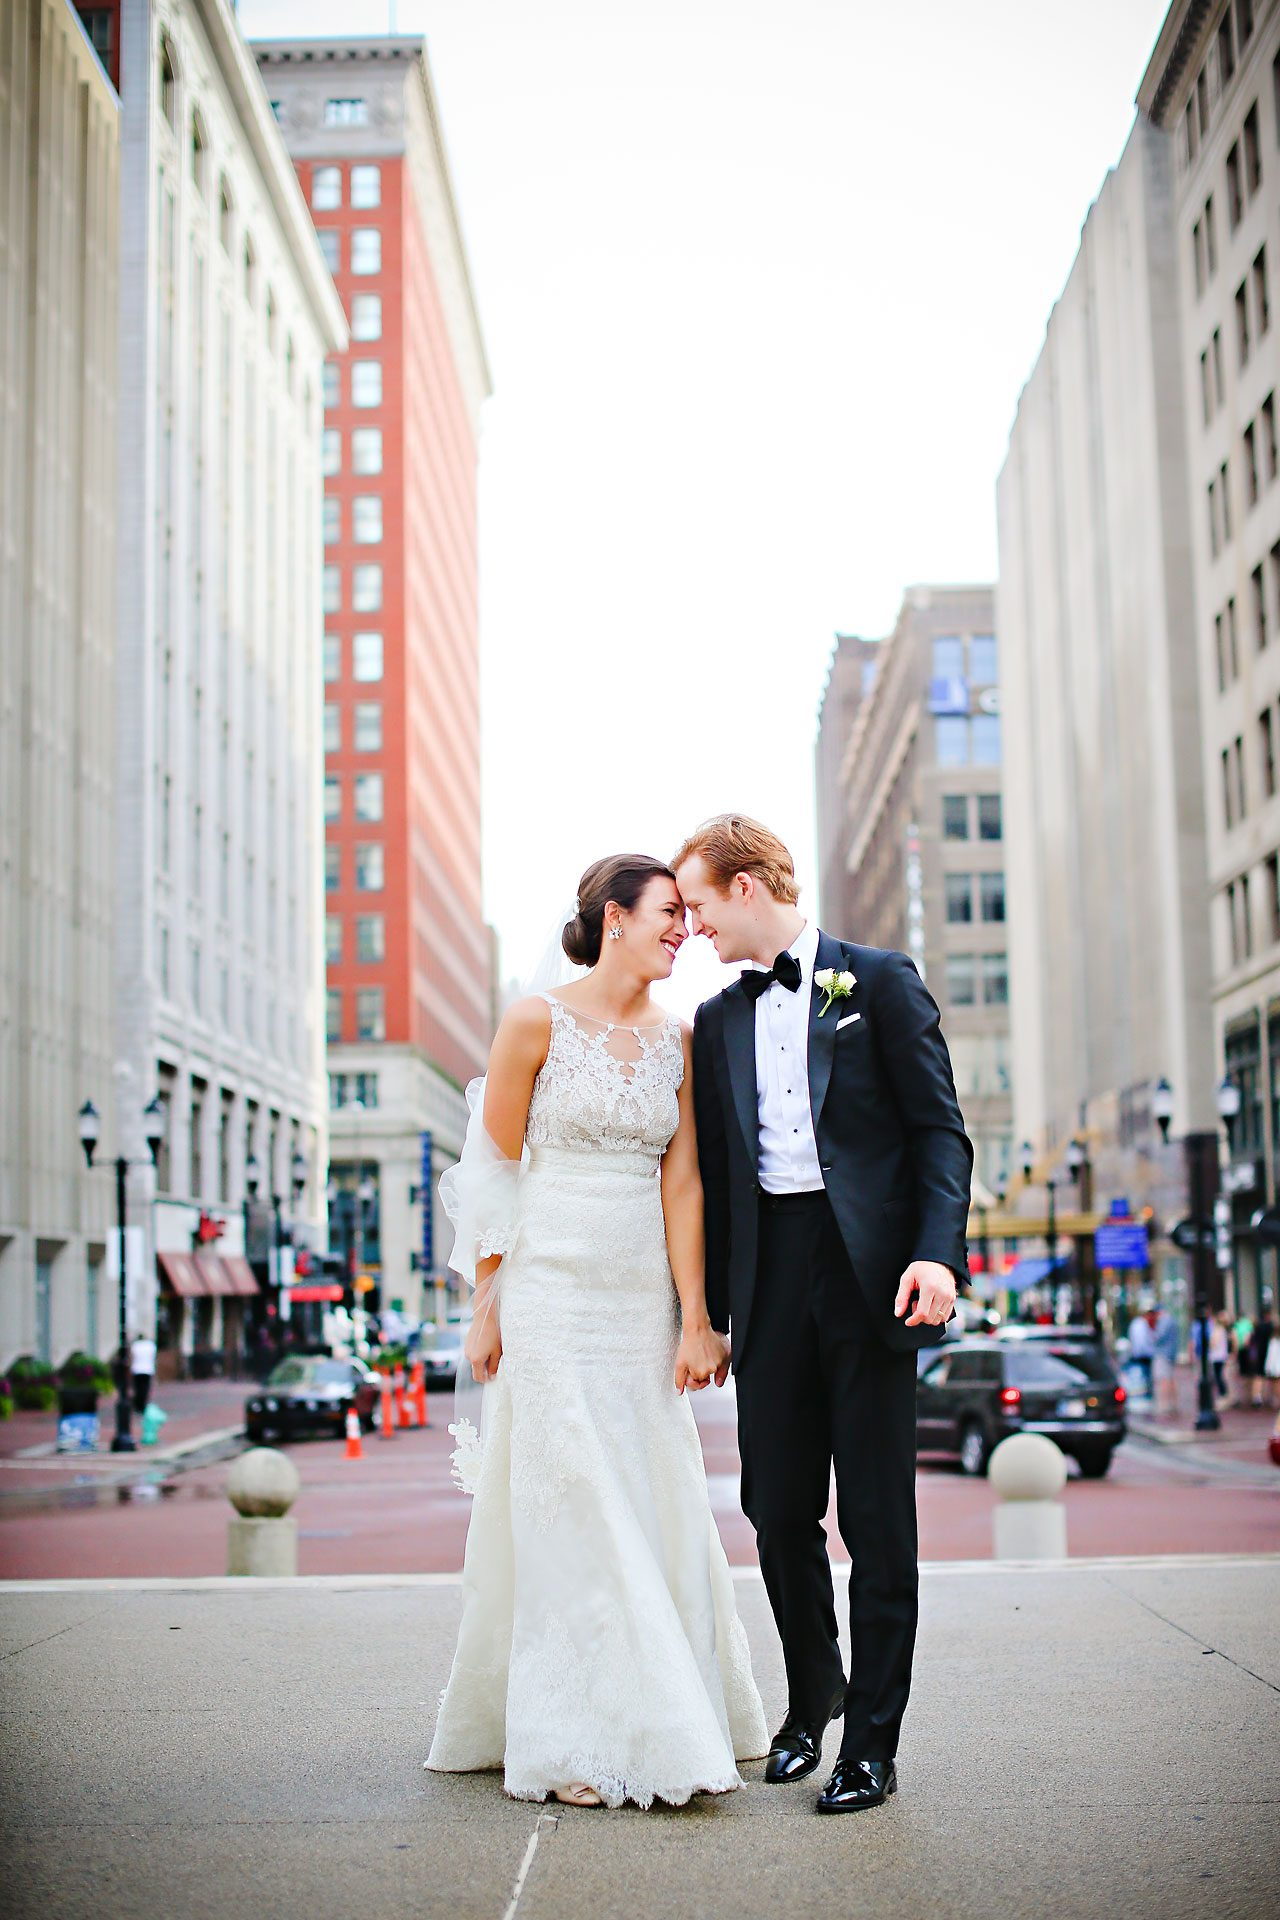 212 katherine austin scottish rite indianapolis wedding